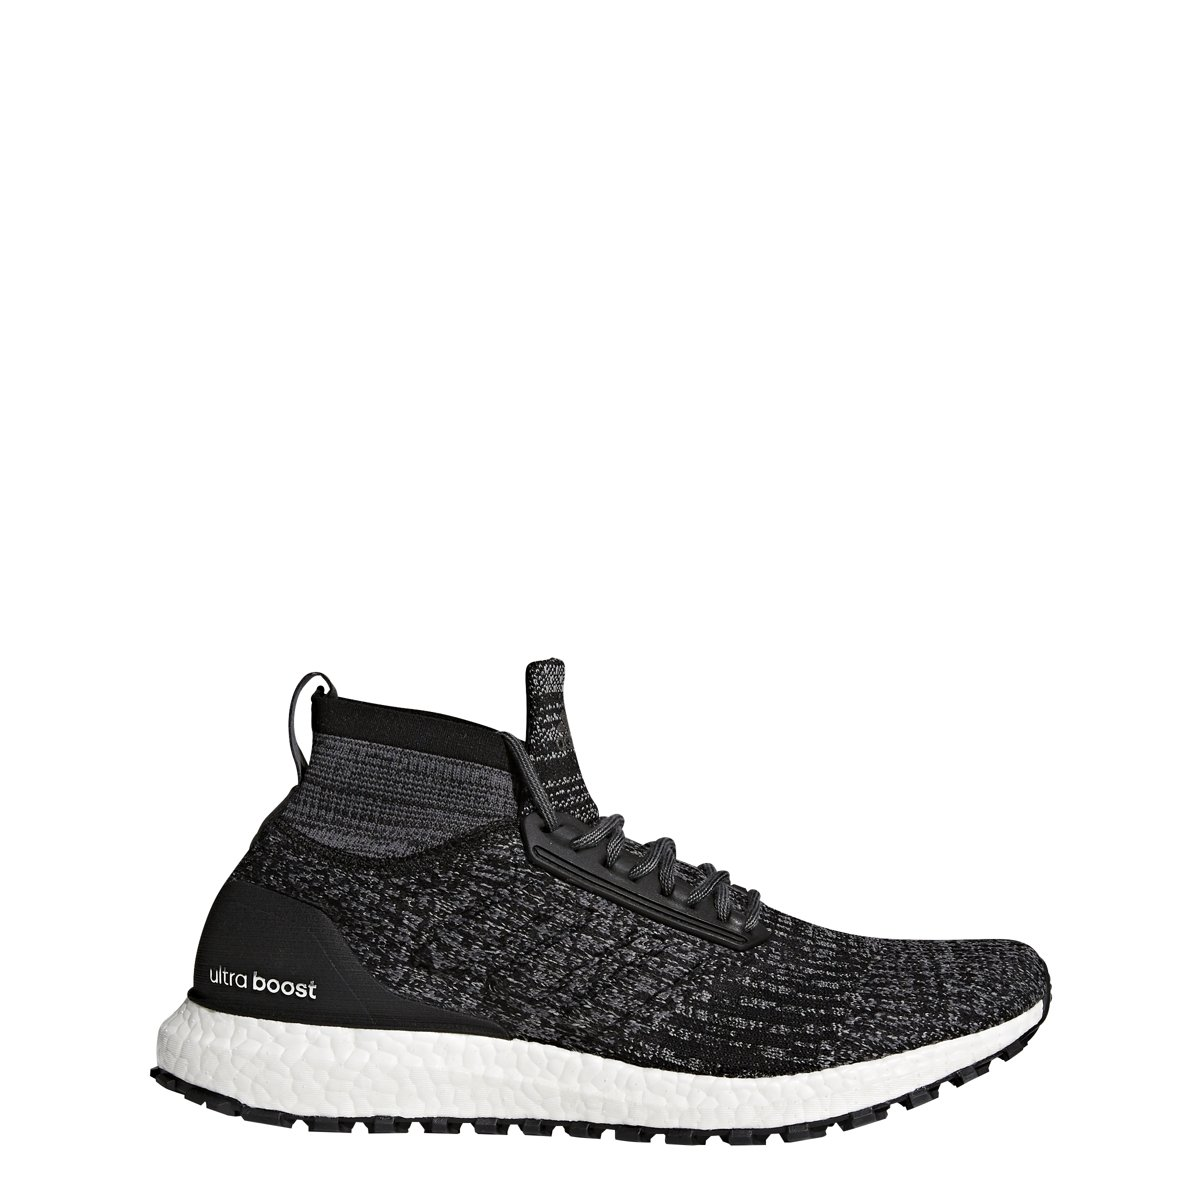 Galleon - Adidas Ultraboost All Terrain Shoe Men s Running 11.5 Core Black -Grey fb4e5a509